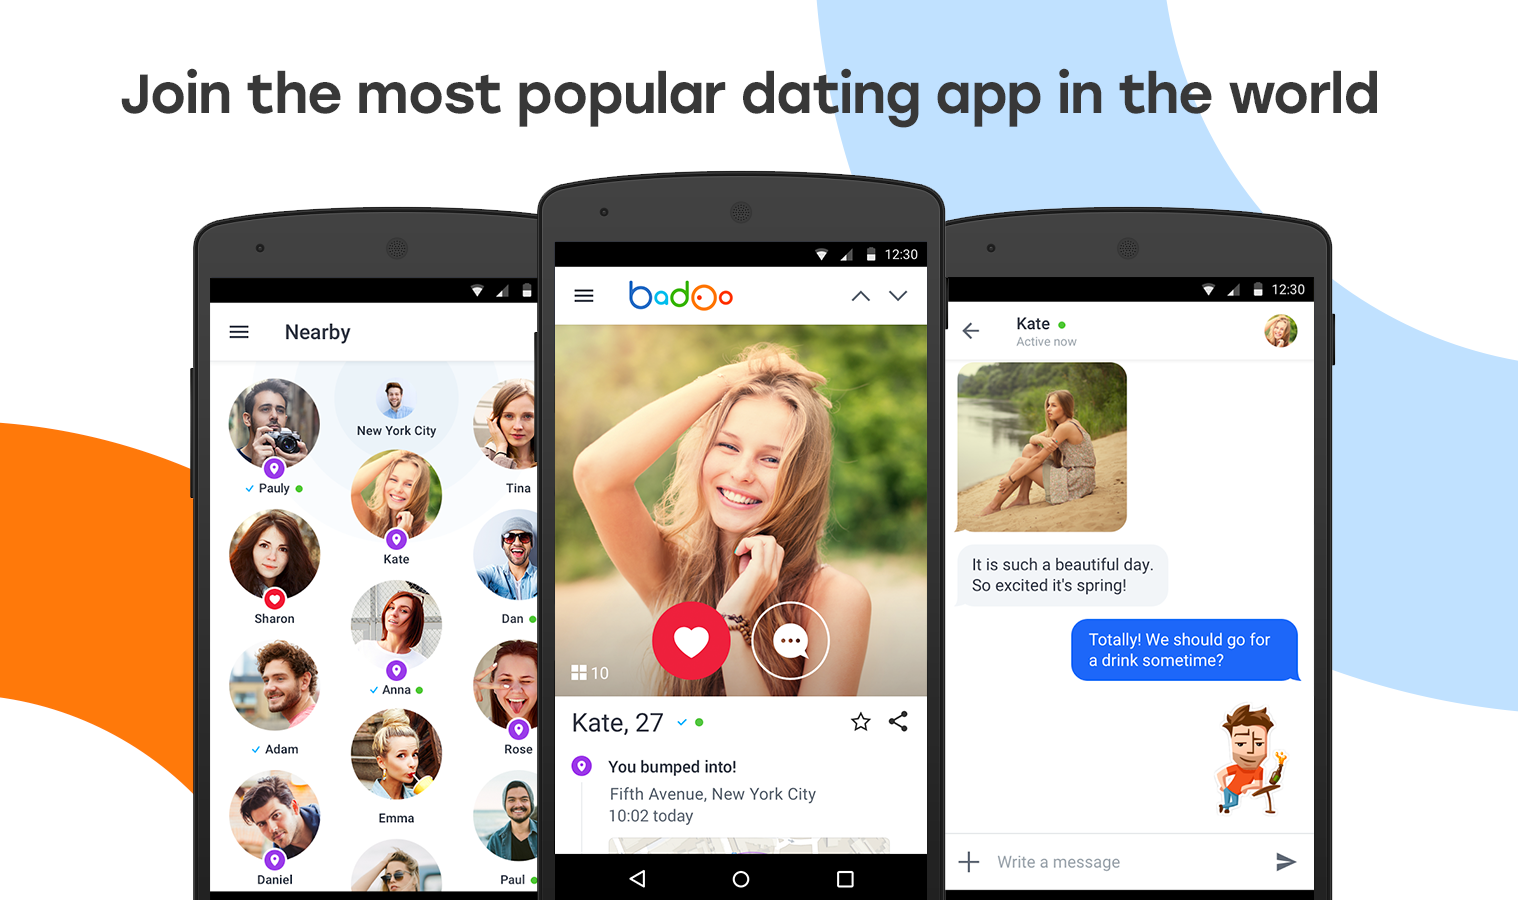 More About Badoo.com